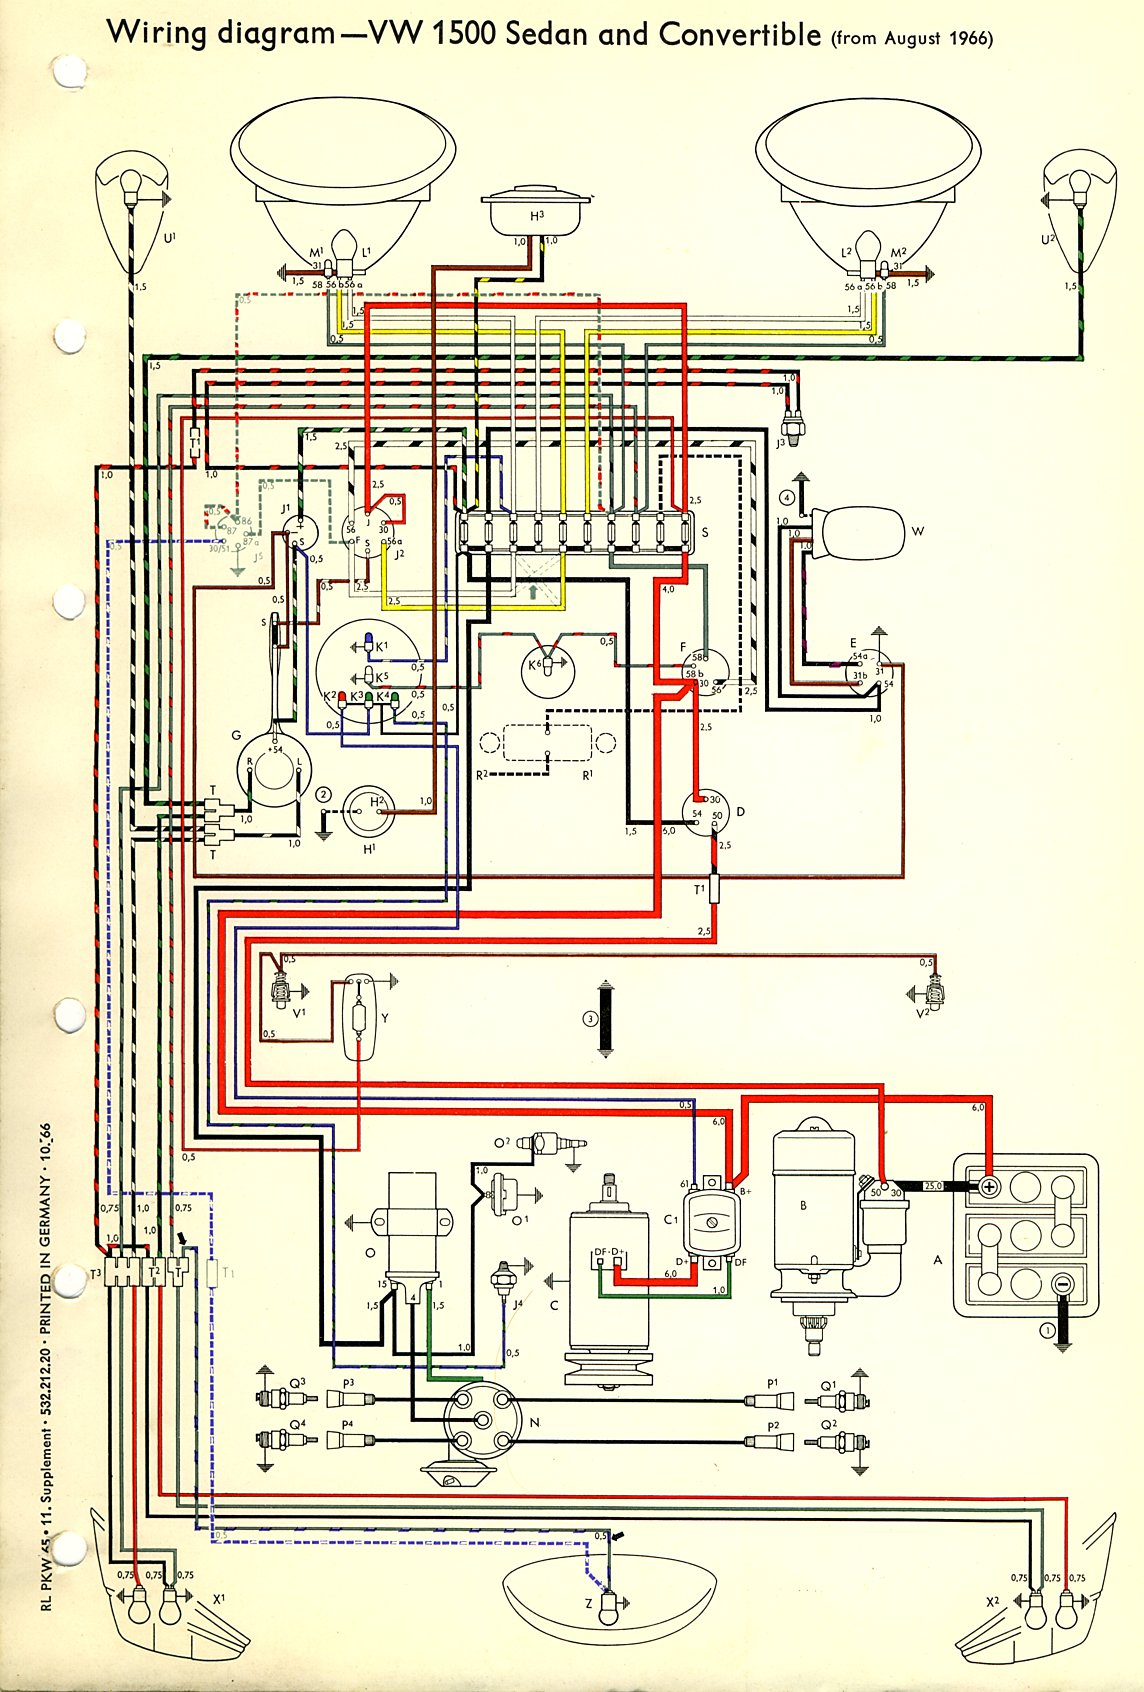 Type 1 Wiring Diagrams Snow Performance Diagram